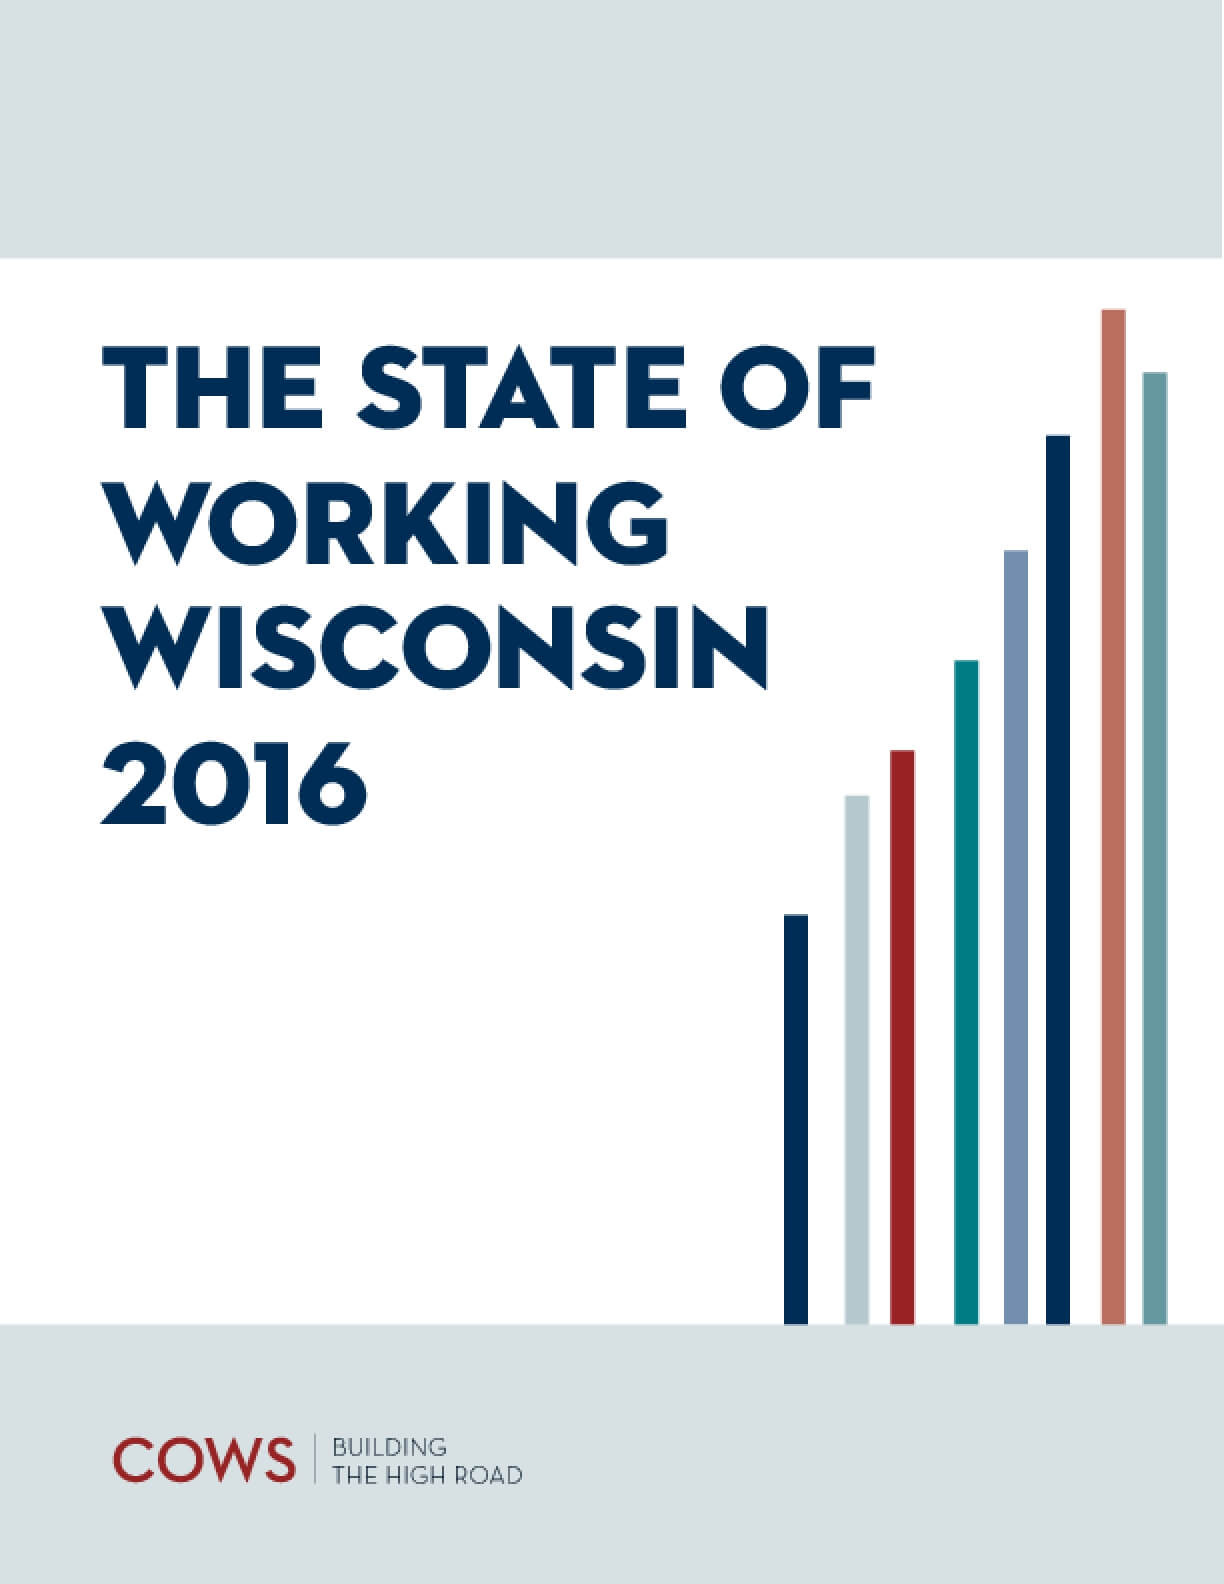 The State of Working Wisconsin 2016